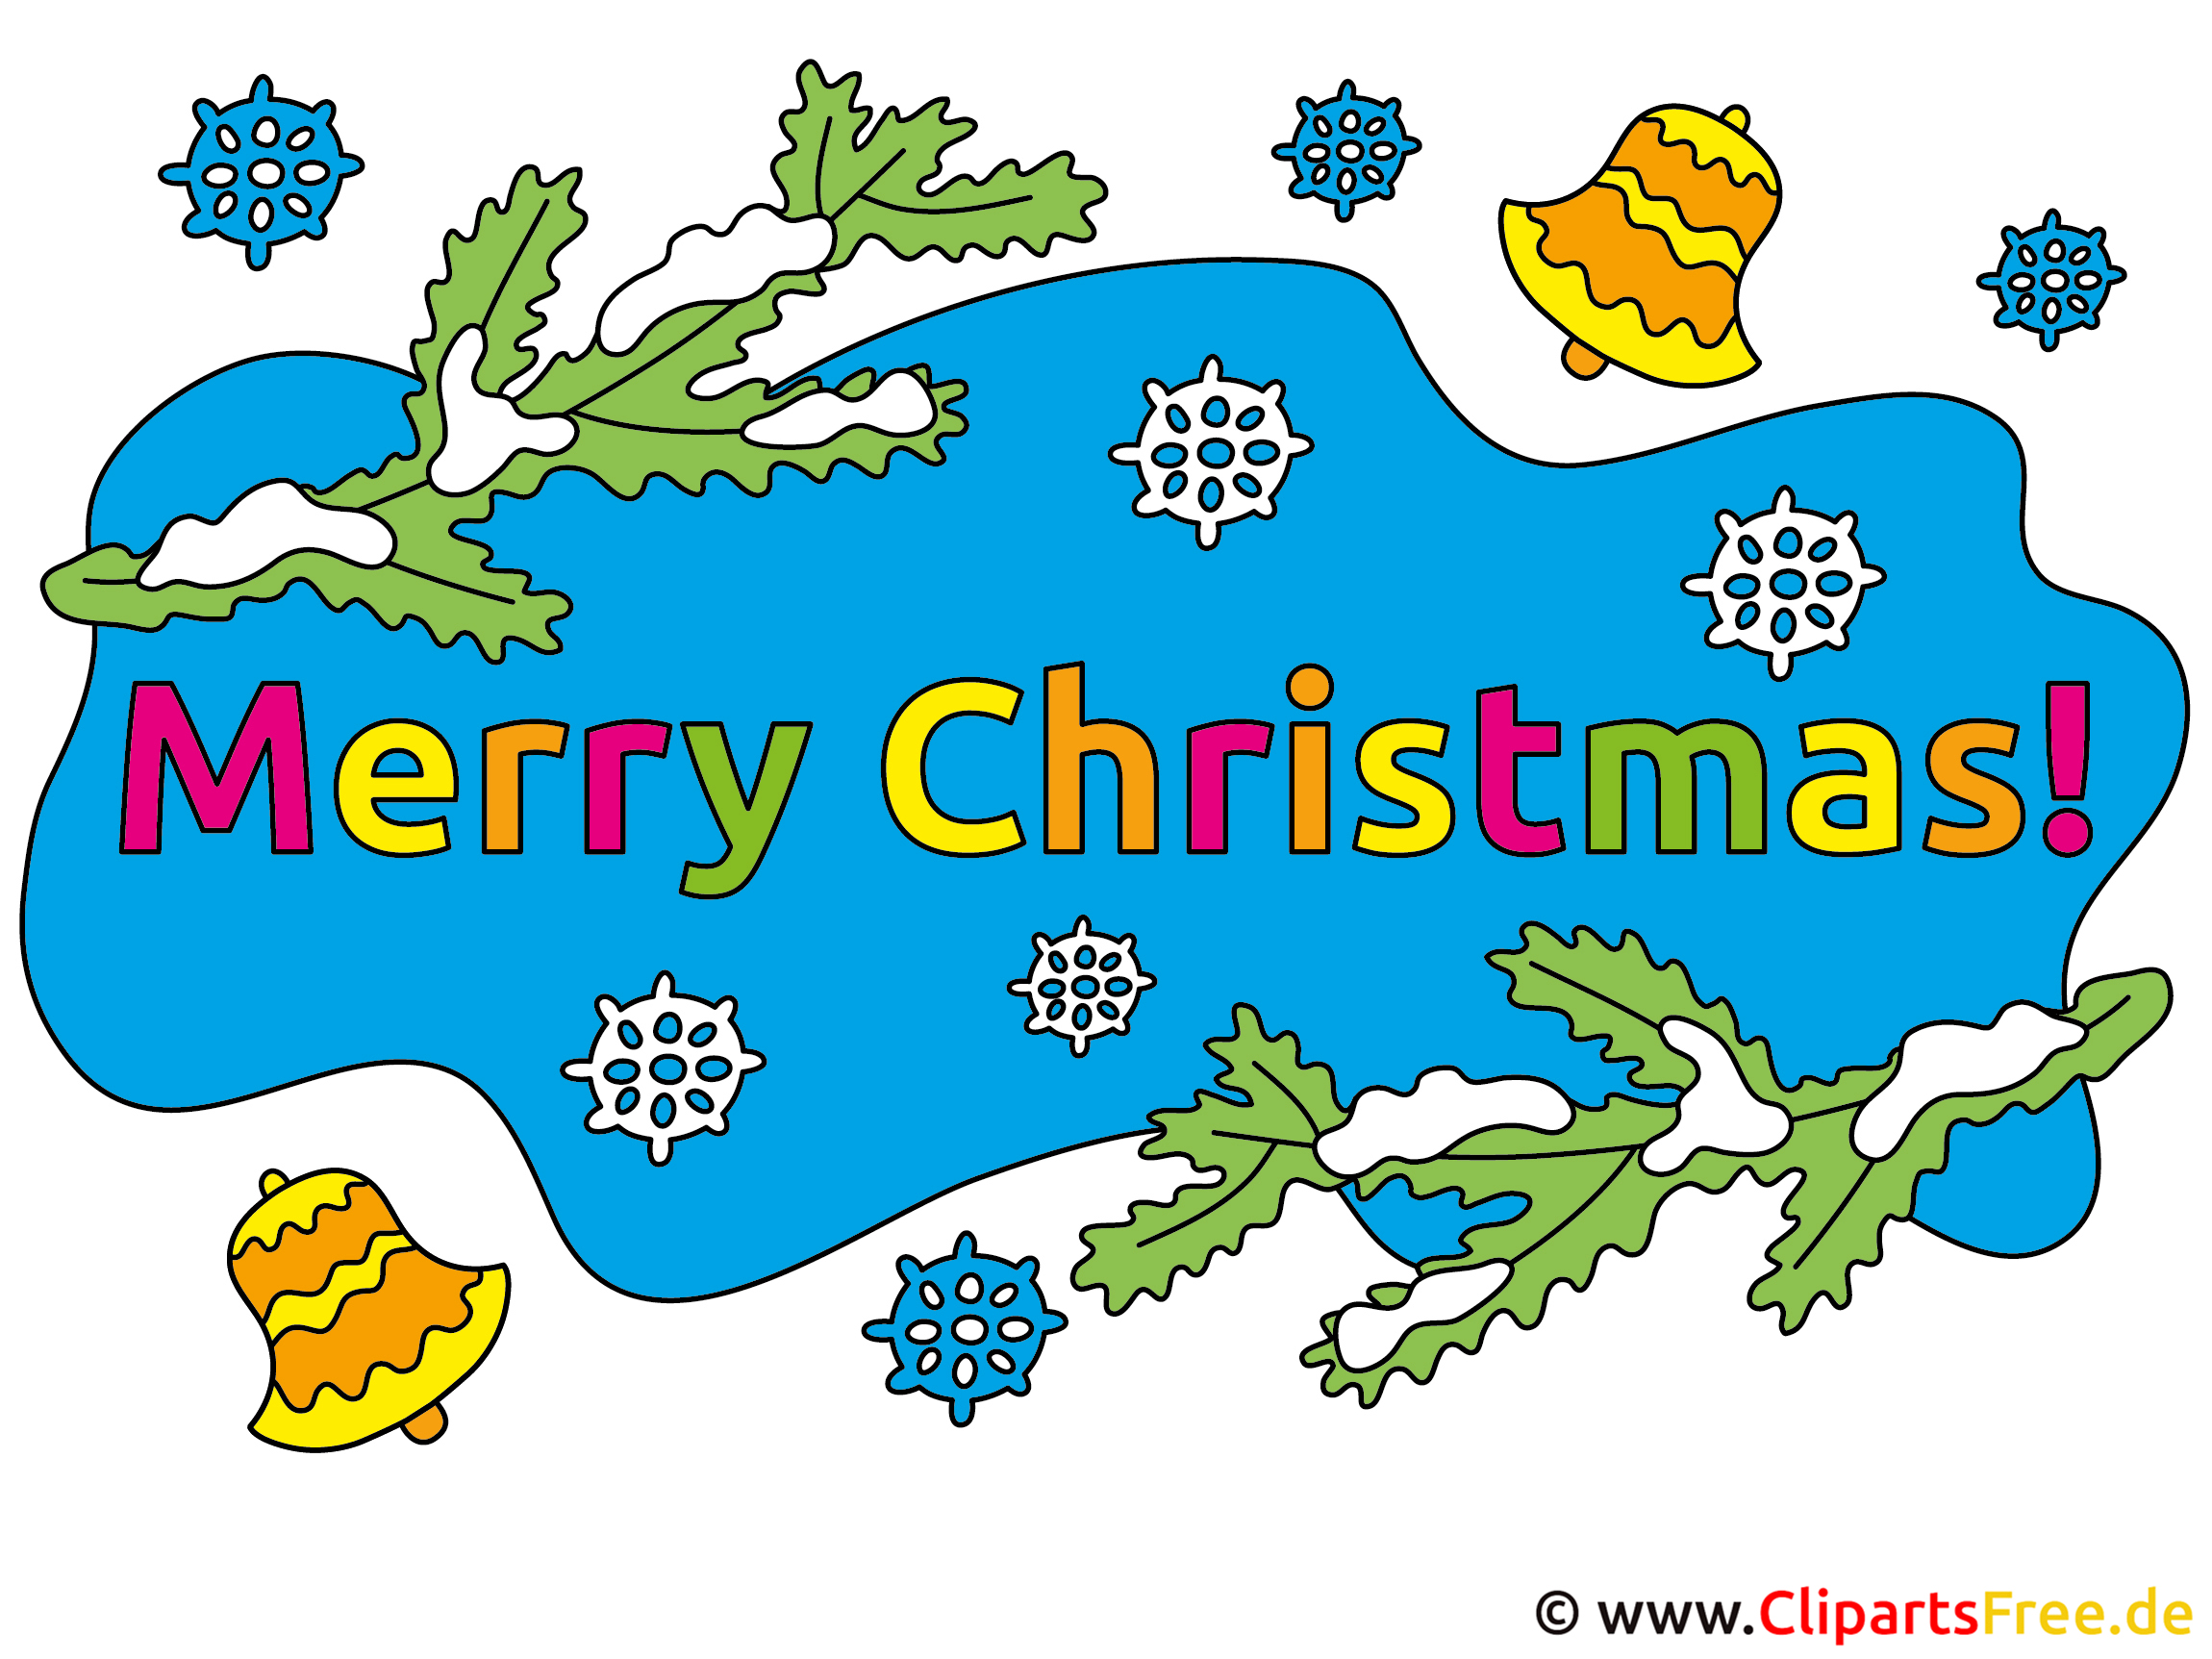 Merry Christmas Cliparts